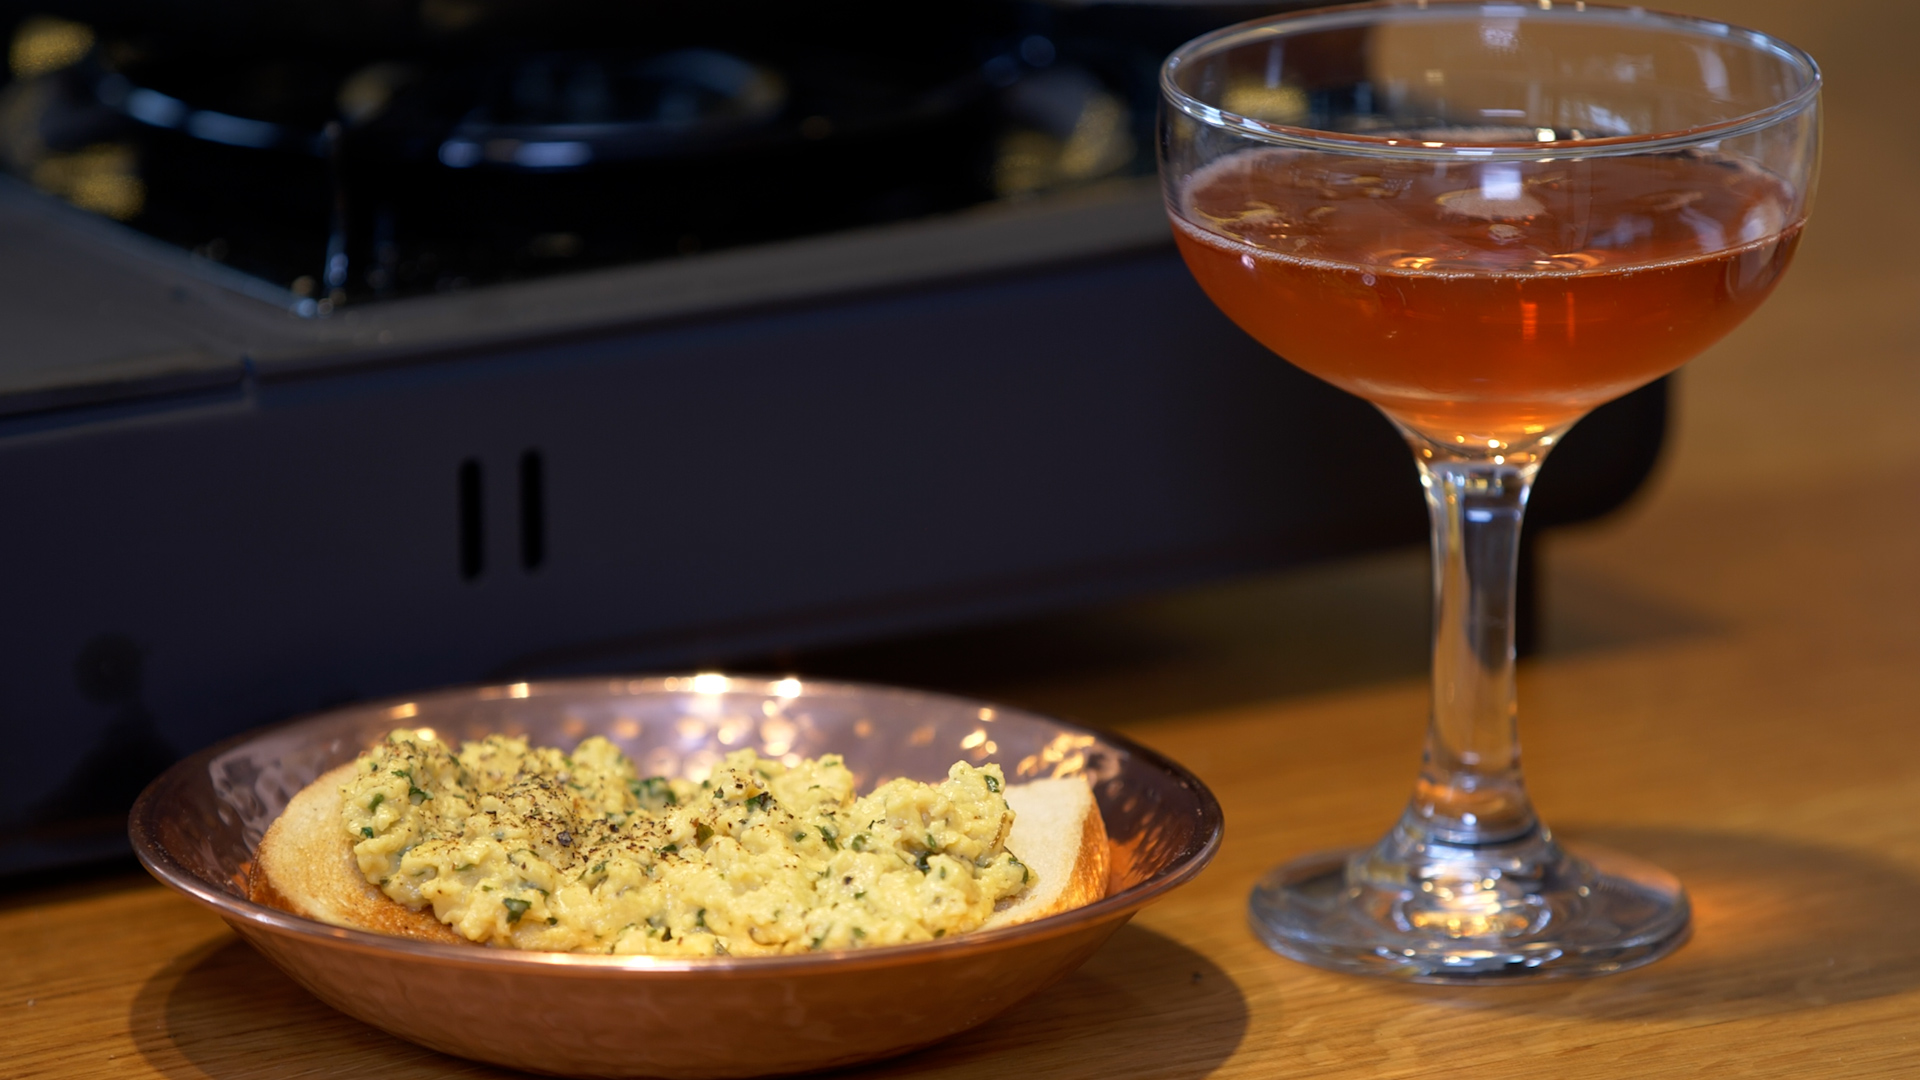 Video: Scrambled Eggs James Bond, the perfect meal for a Bond movie